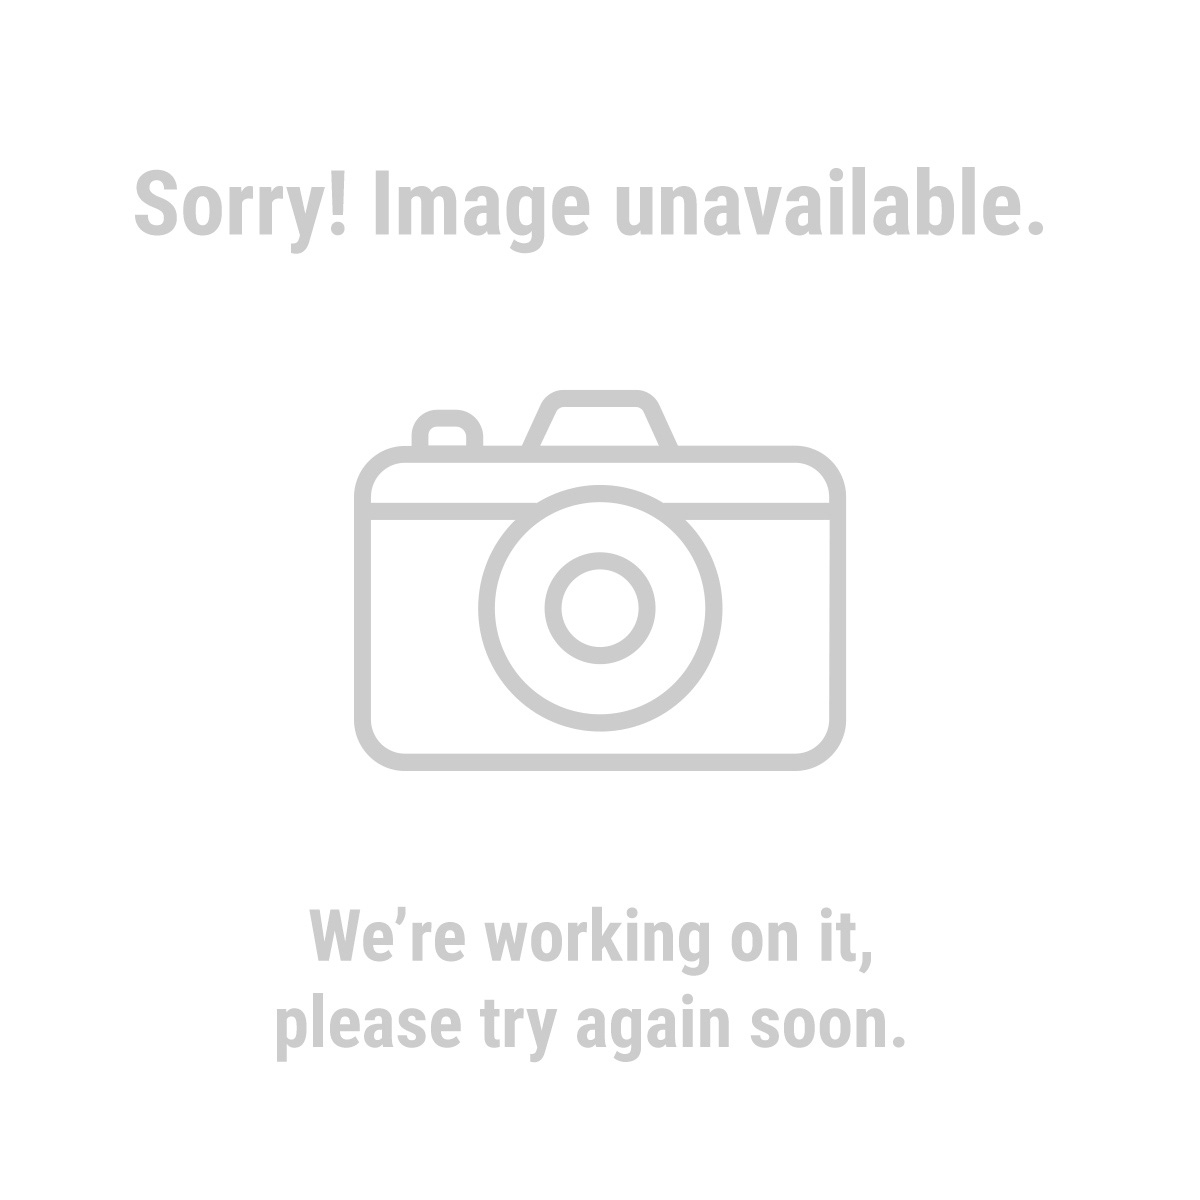 Warrior 60797 4-1/2 in. 40 Grit Flap Zirc Disc